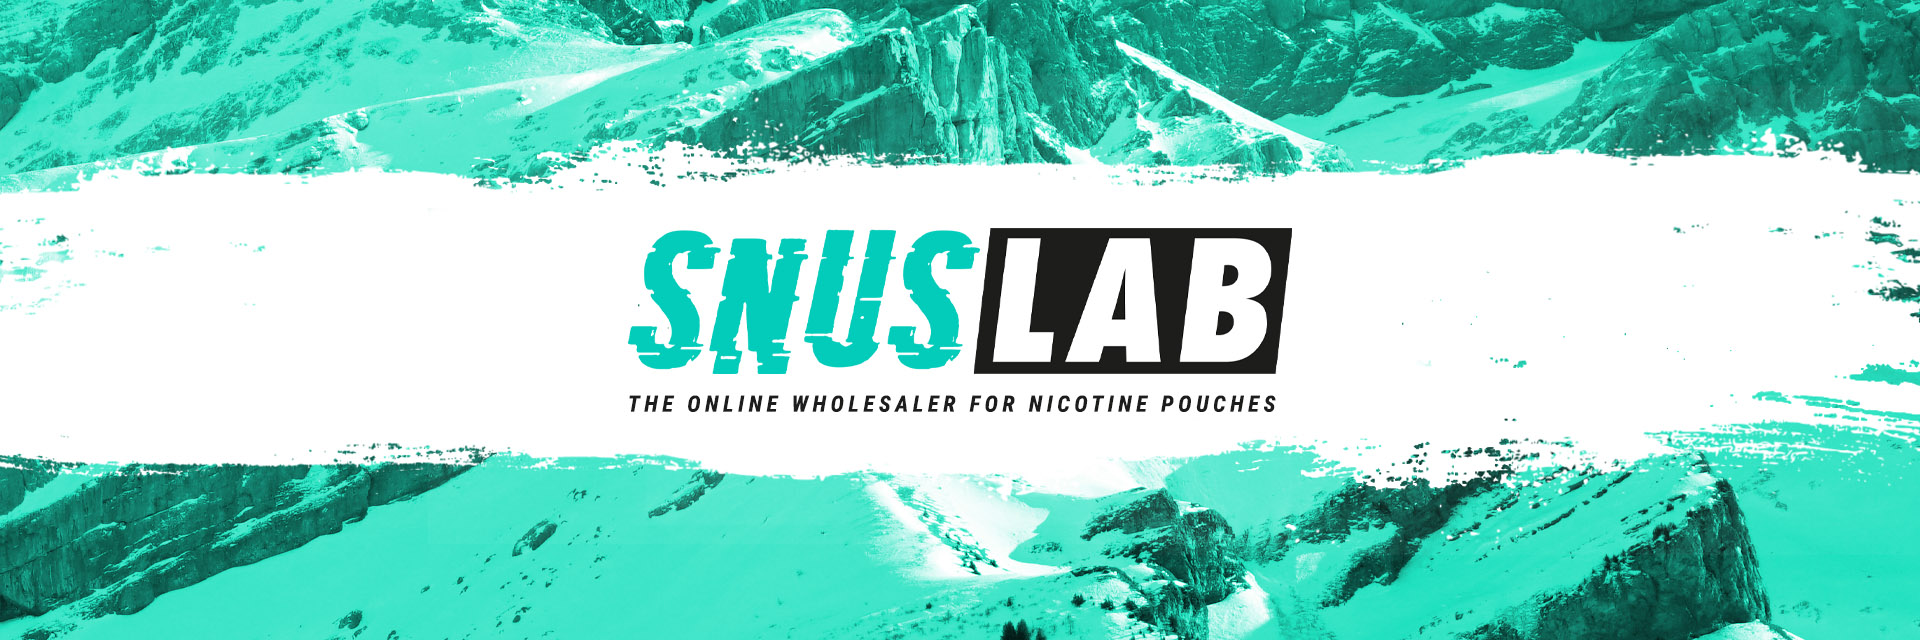 snuslab the online wholesaler for nicotine pouches